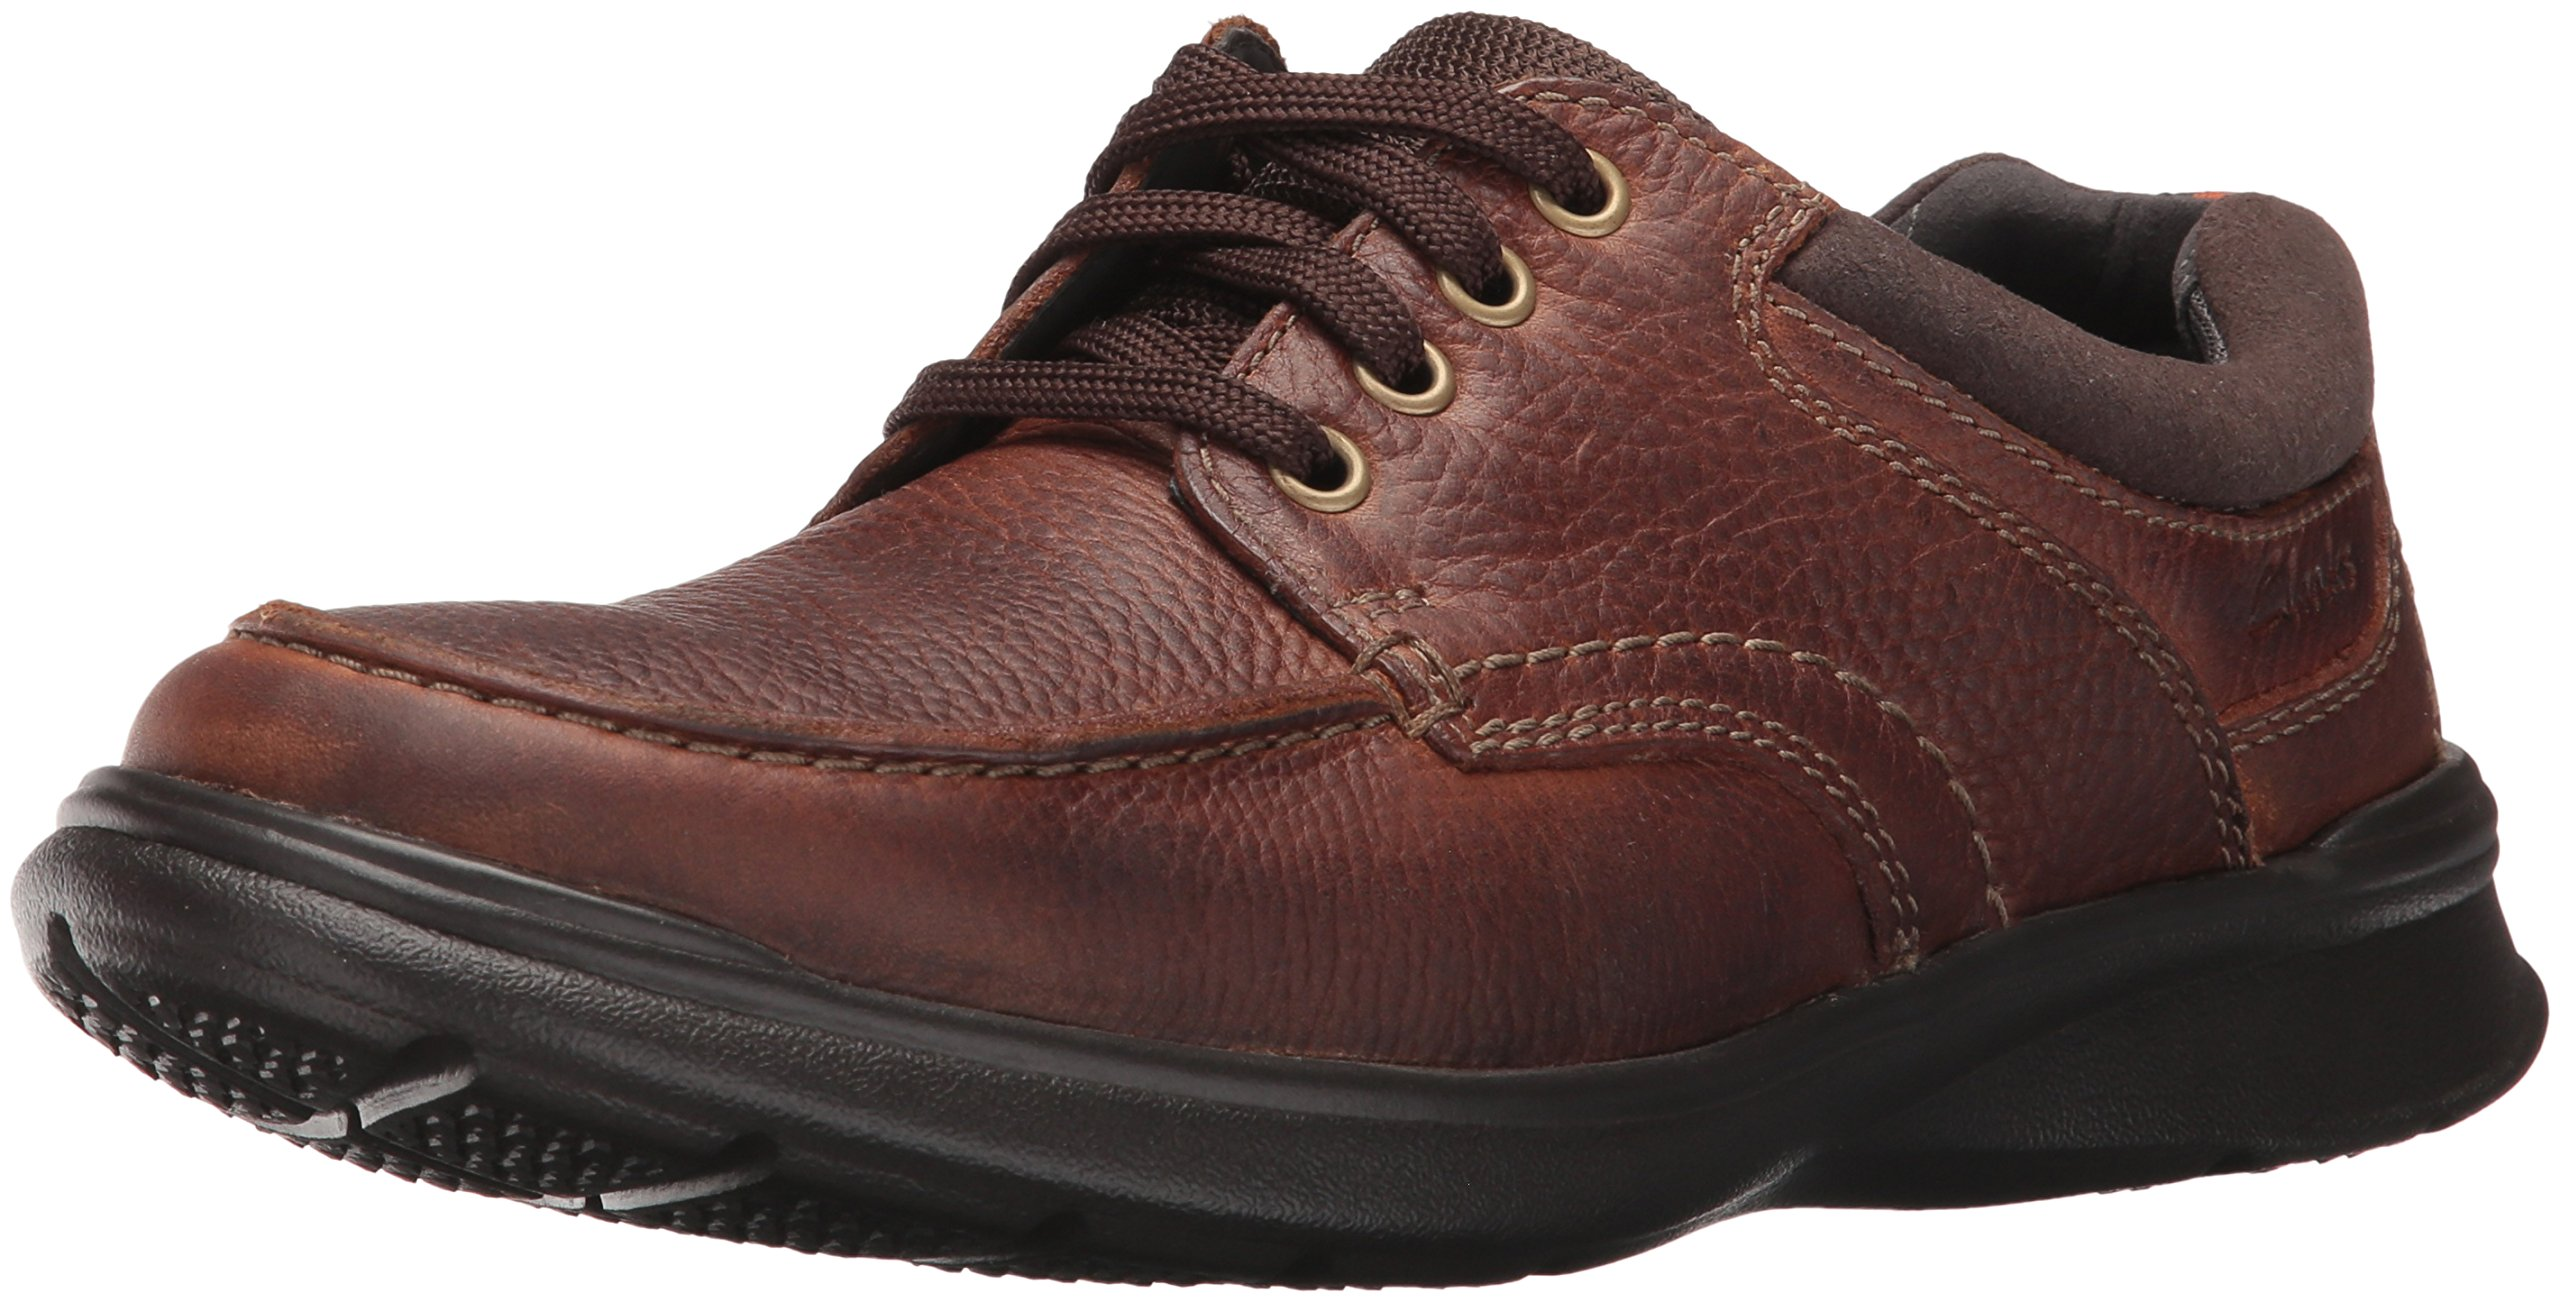 CLARKS Men's Cotrell Edge Oxford, Tobacco Oily, 10.5 M US by CLARKS